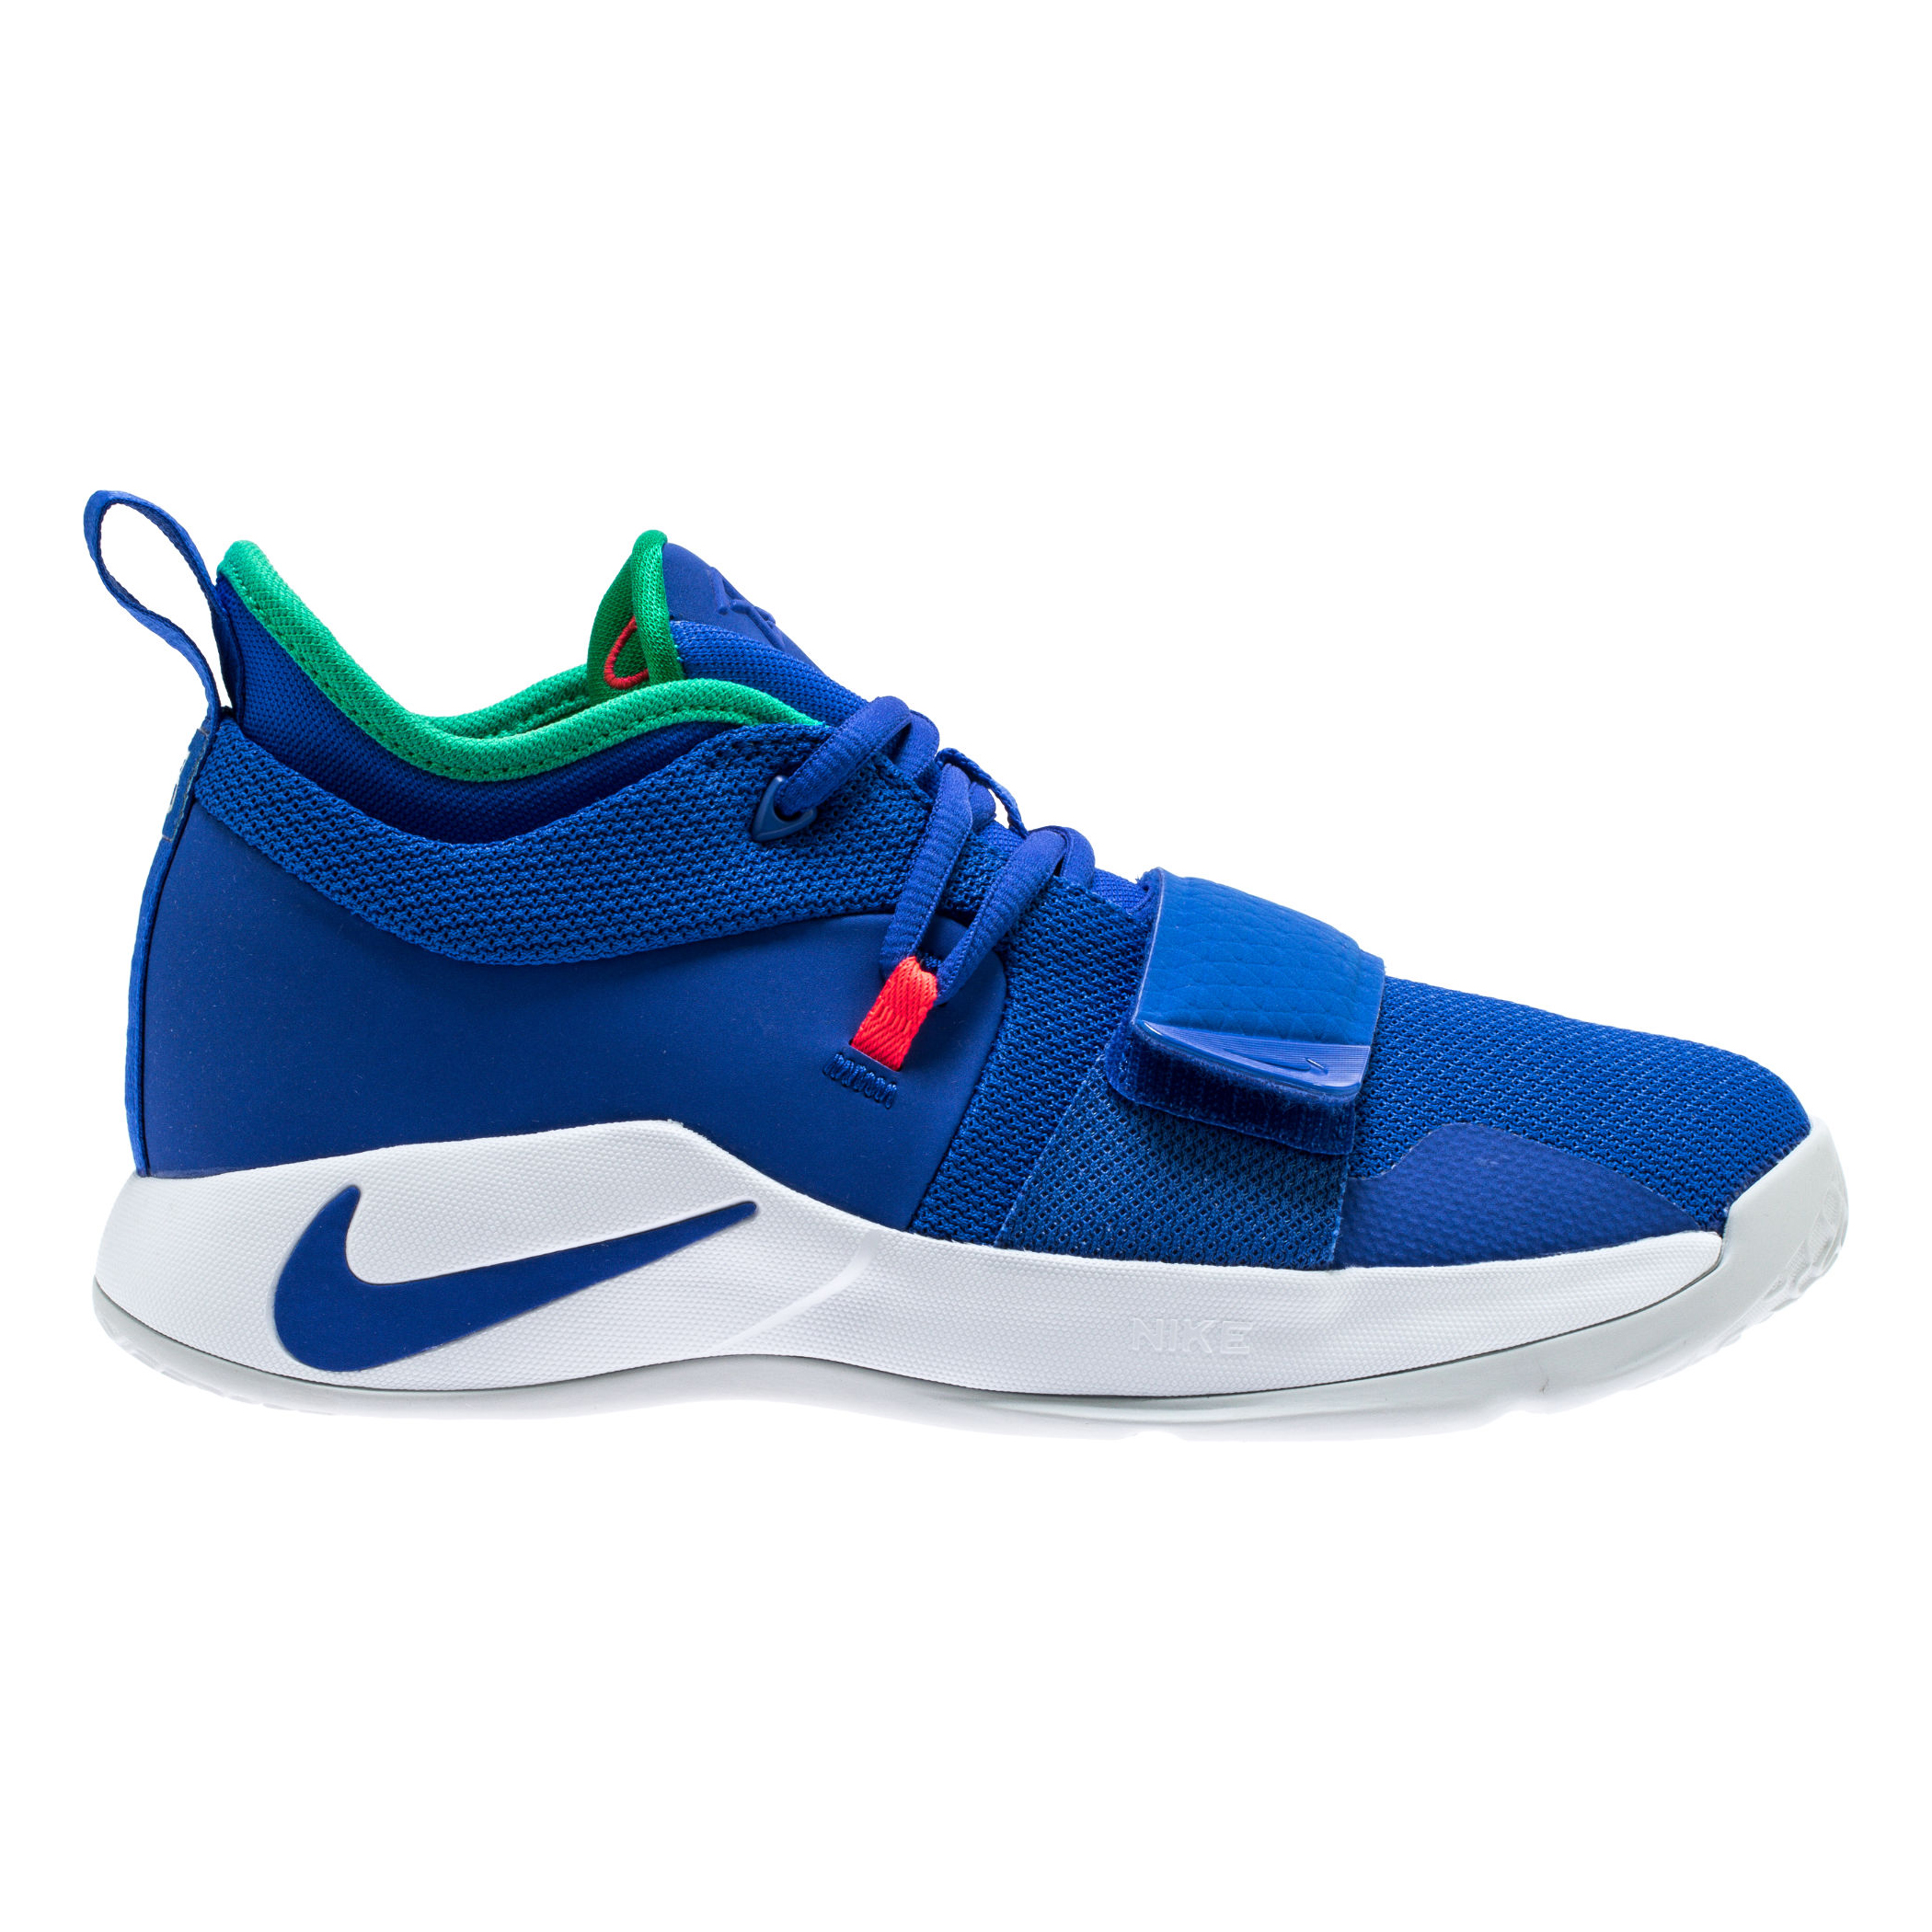 The Nike PG 2.5 'Racer Blue' is the